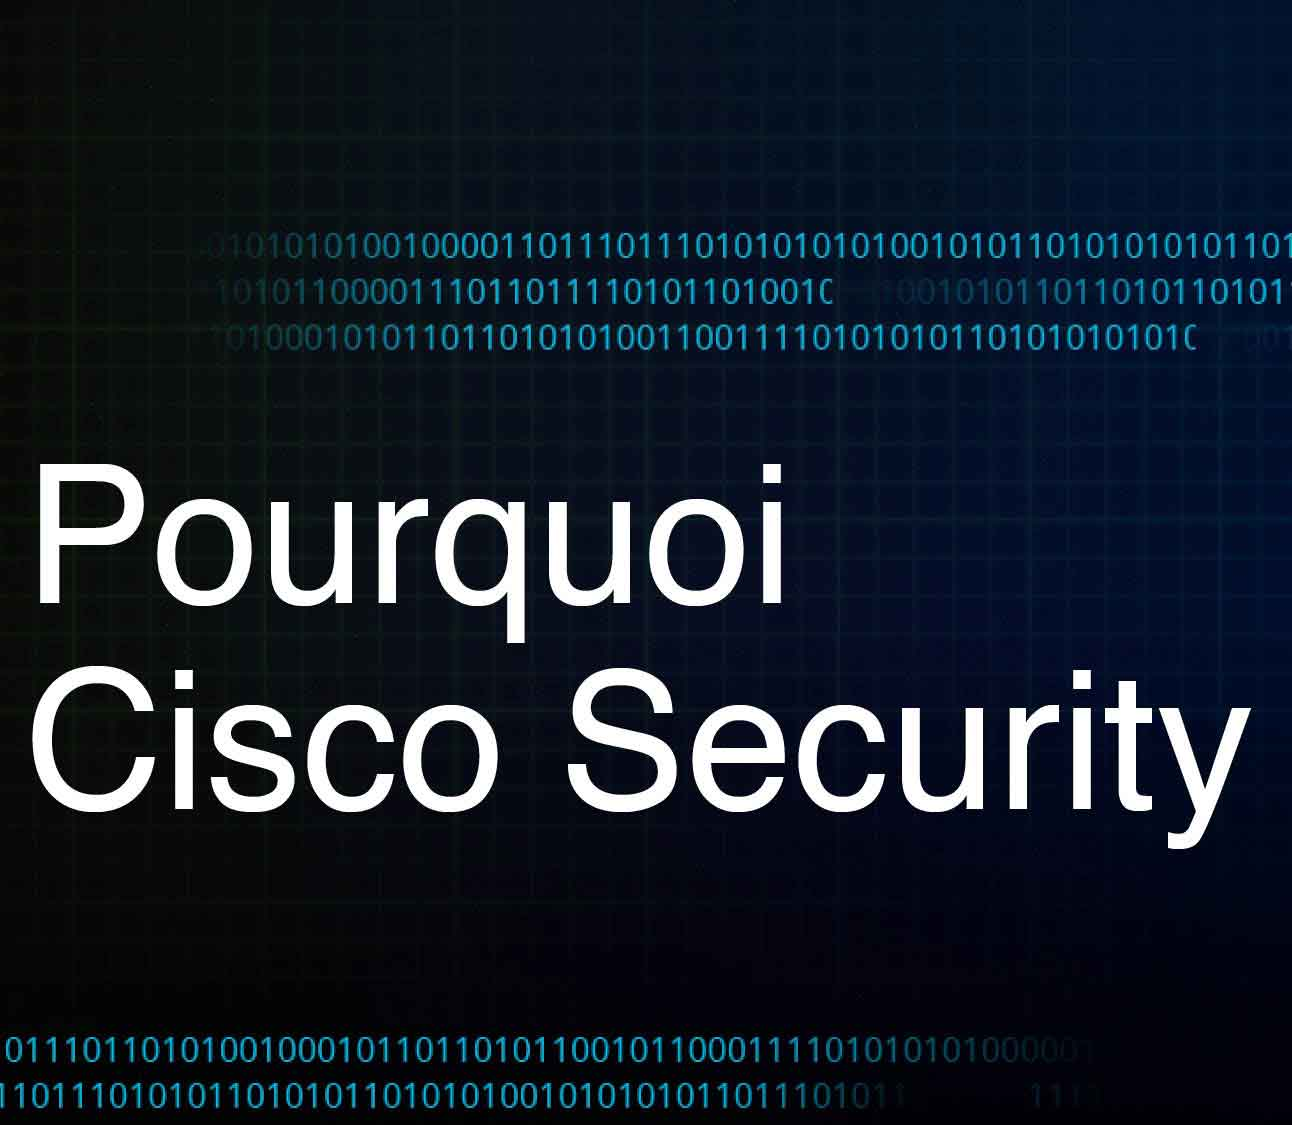 Pourquoi Cisco Security? Featured Image